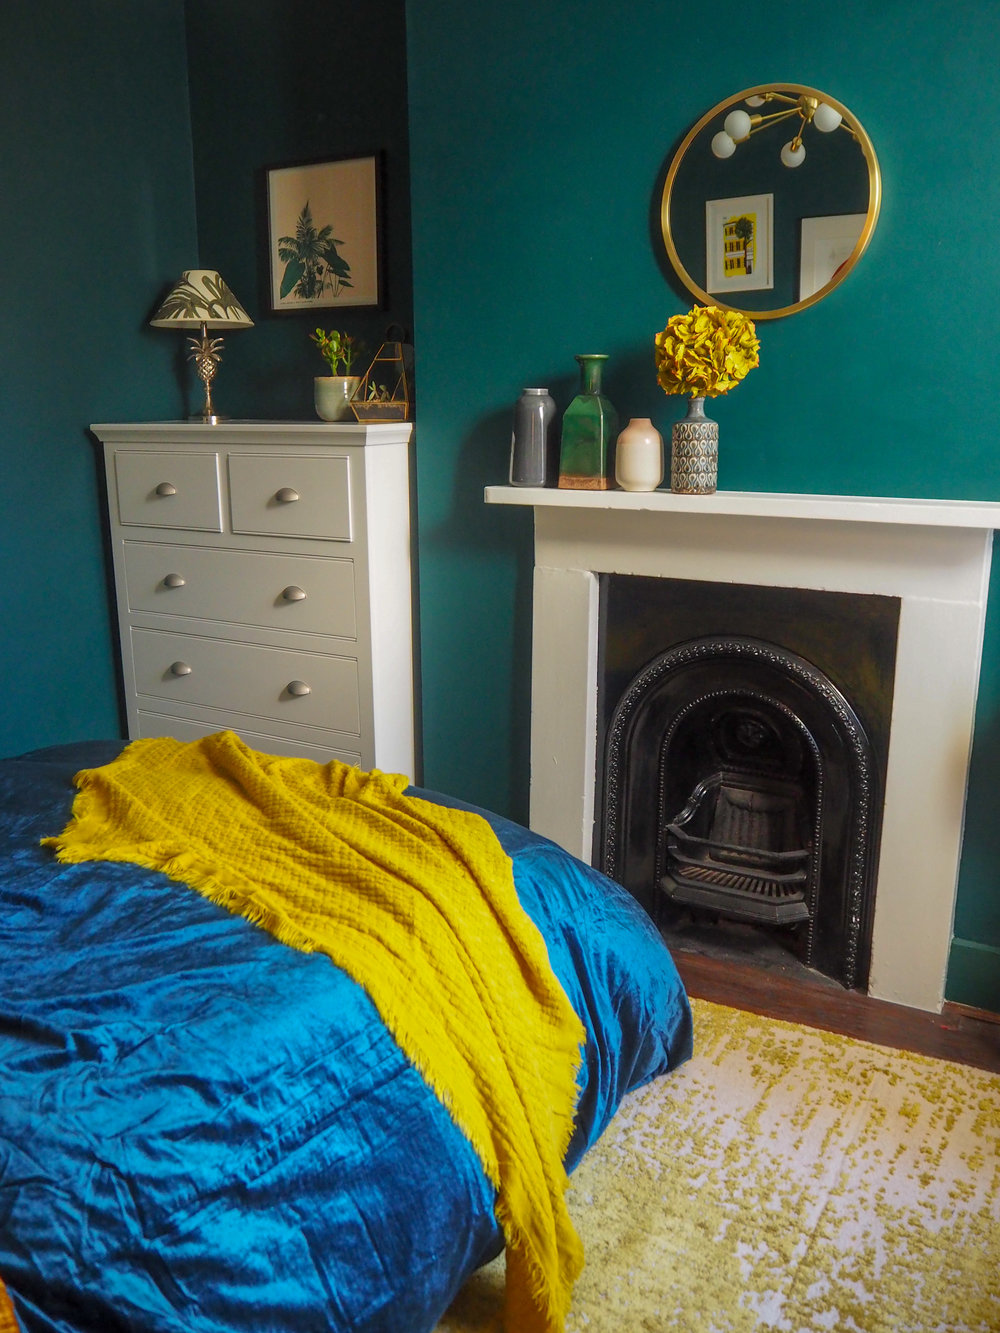 Crinkle Velvet Duvet Cover + Pillowcases   - Golden Oaks £149 from   West Elm   ;    Washed Cotton Lustre Velvet Duvet Cover + Pillowcases - Regal Blue   £149 from   West Elm   ;    Metalized Glass Table Lamp + USB - Small (Green)   £99 from   West Elm  ;   Alloy Distressed Rug   £499 from   West Elm  ; Bed (Old);   Waffle Weave Throw in horseradish   £39 from   West Elm  . Mirror from   Sainsburys   - old.